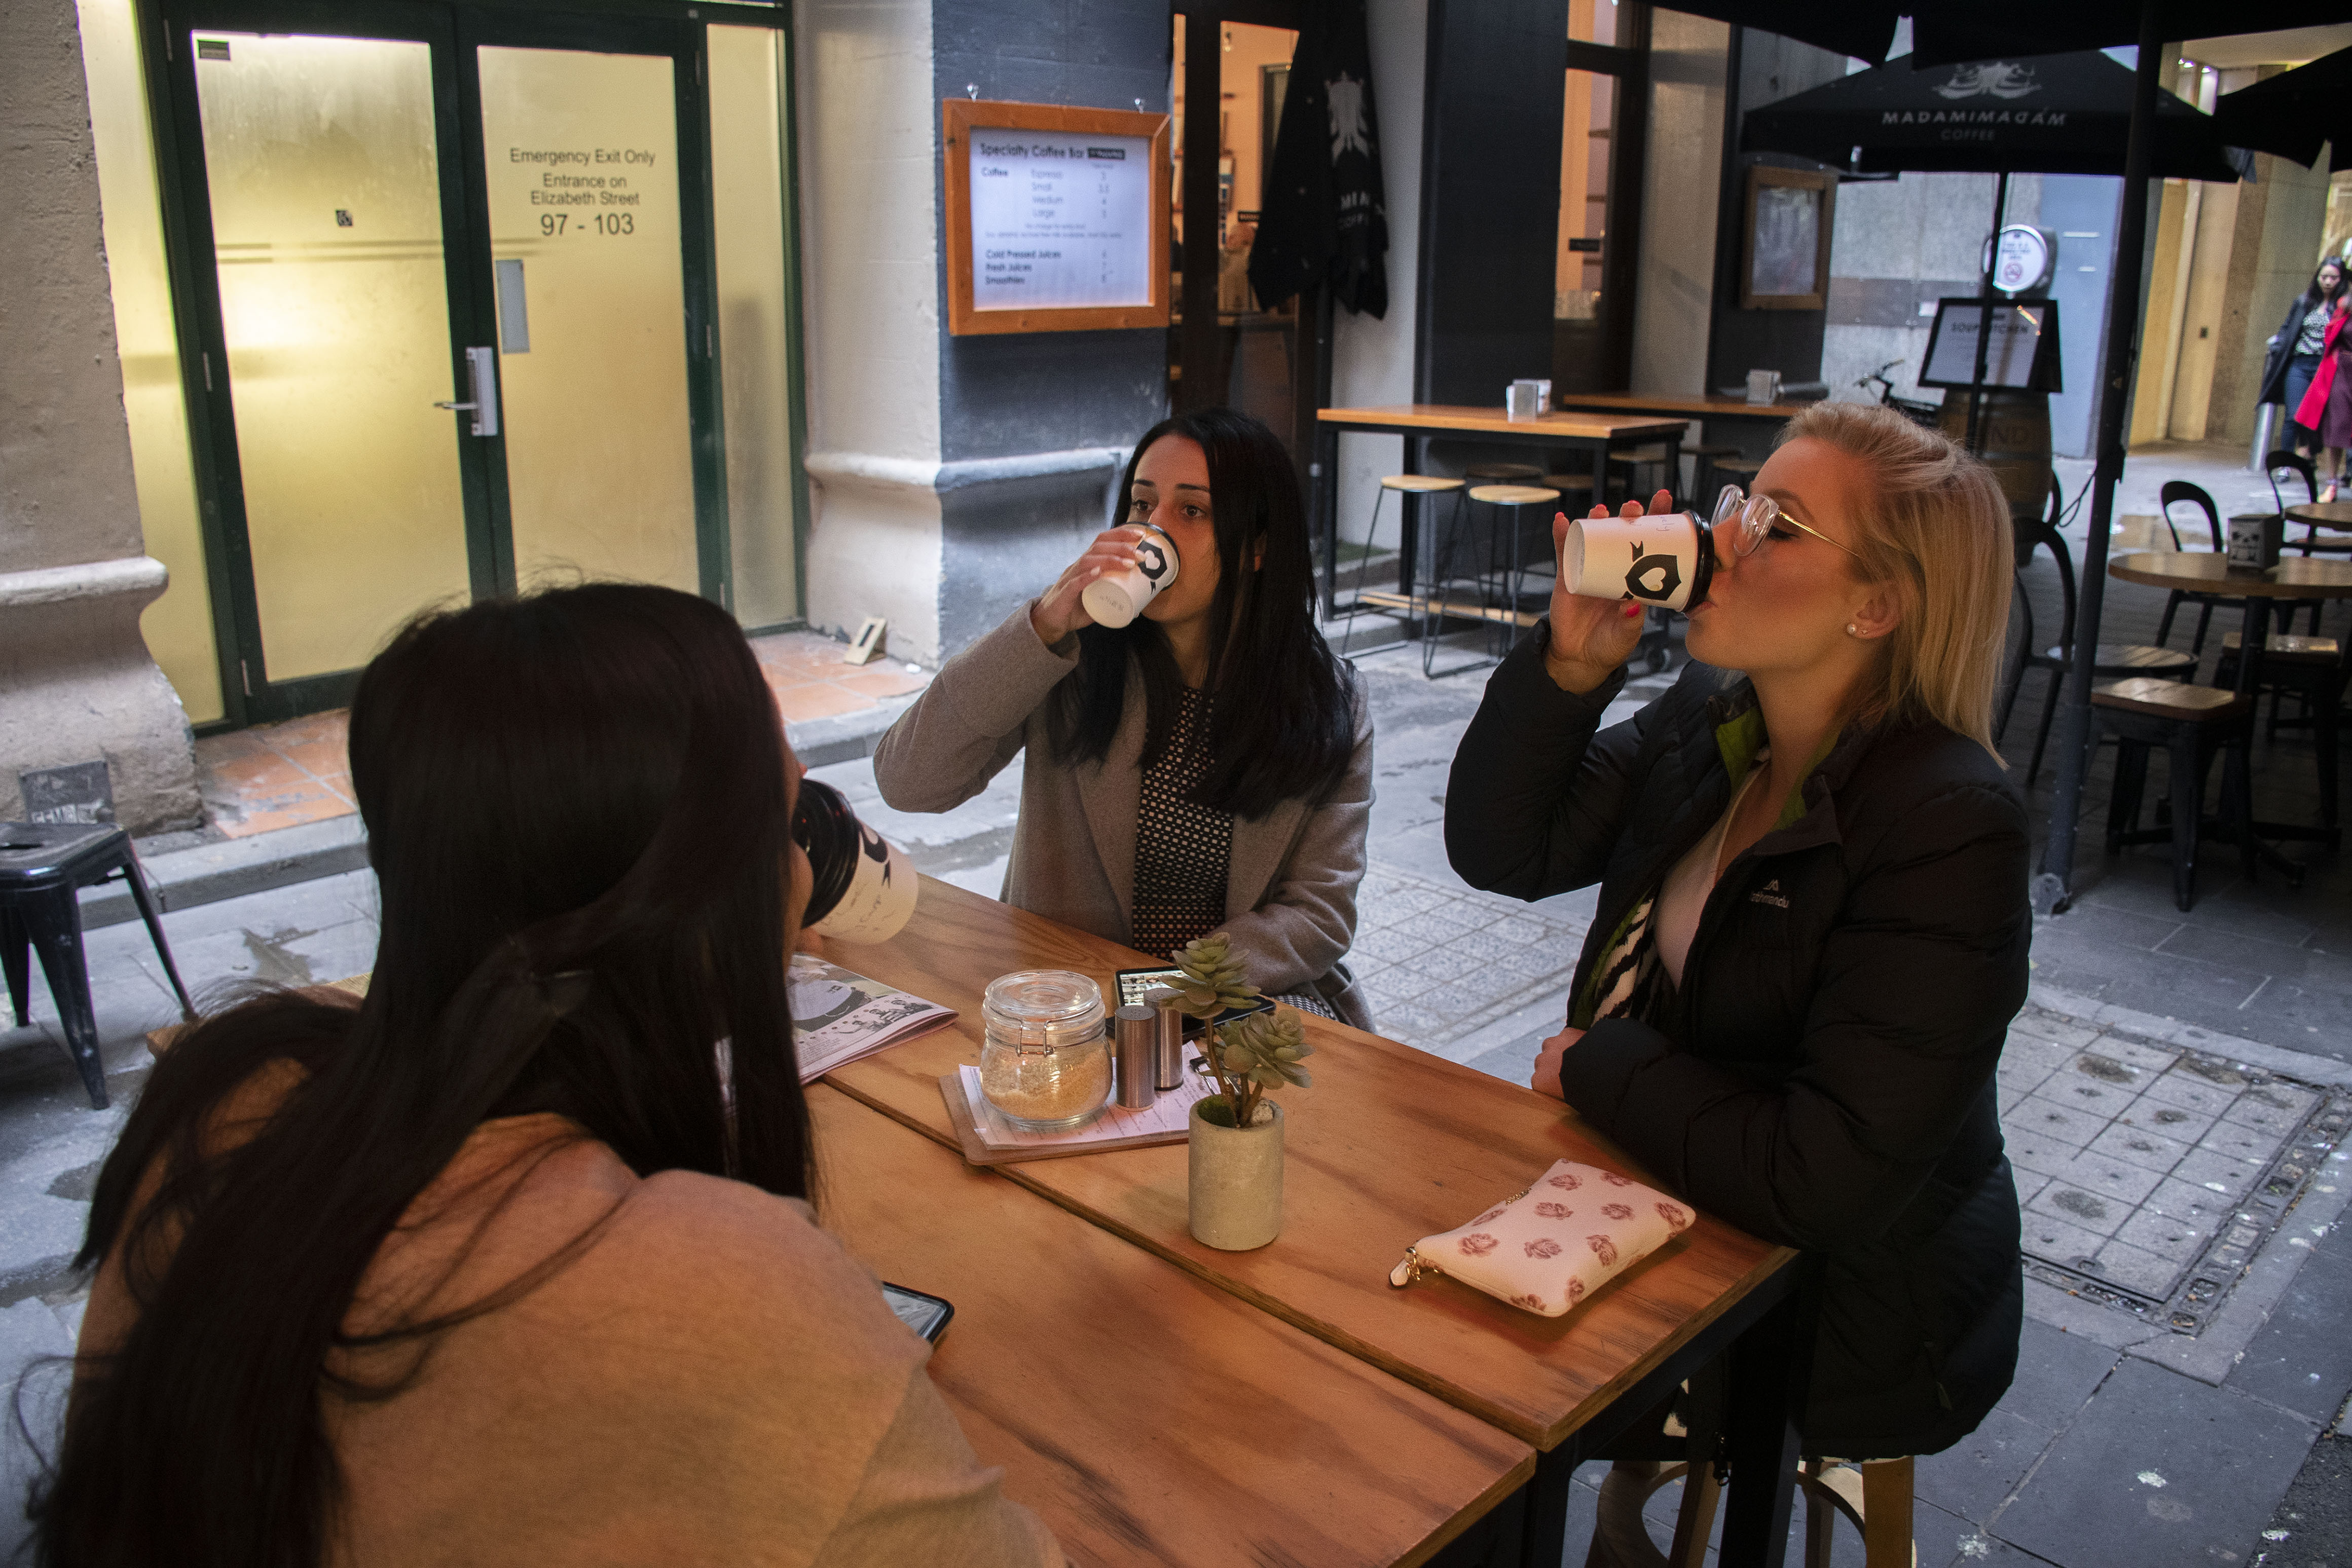 Kealy Martin, Rhea D'Souza, and Jessica Takla treat themselves to a cup of coffee after finishing their night shifts.